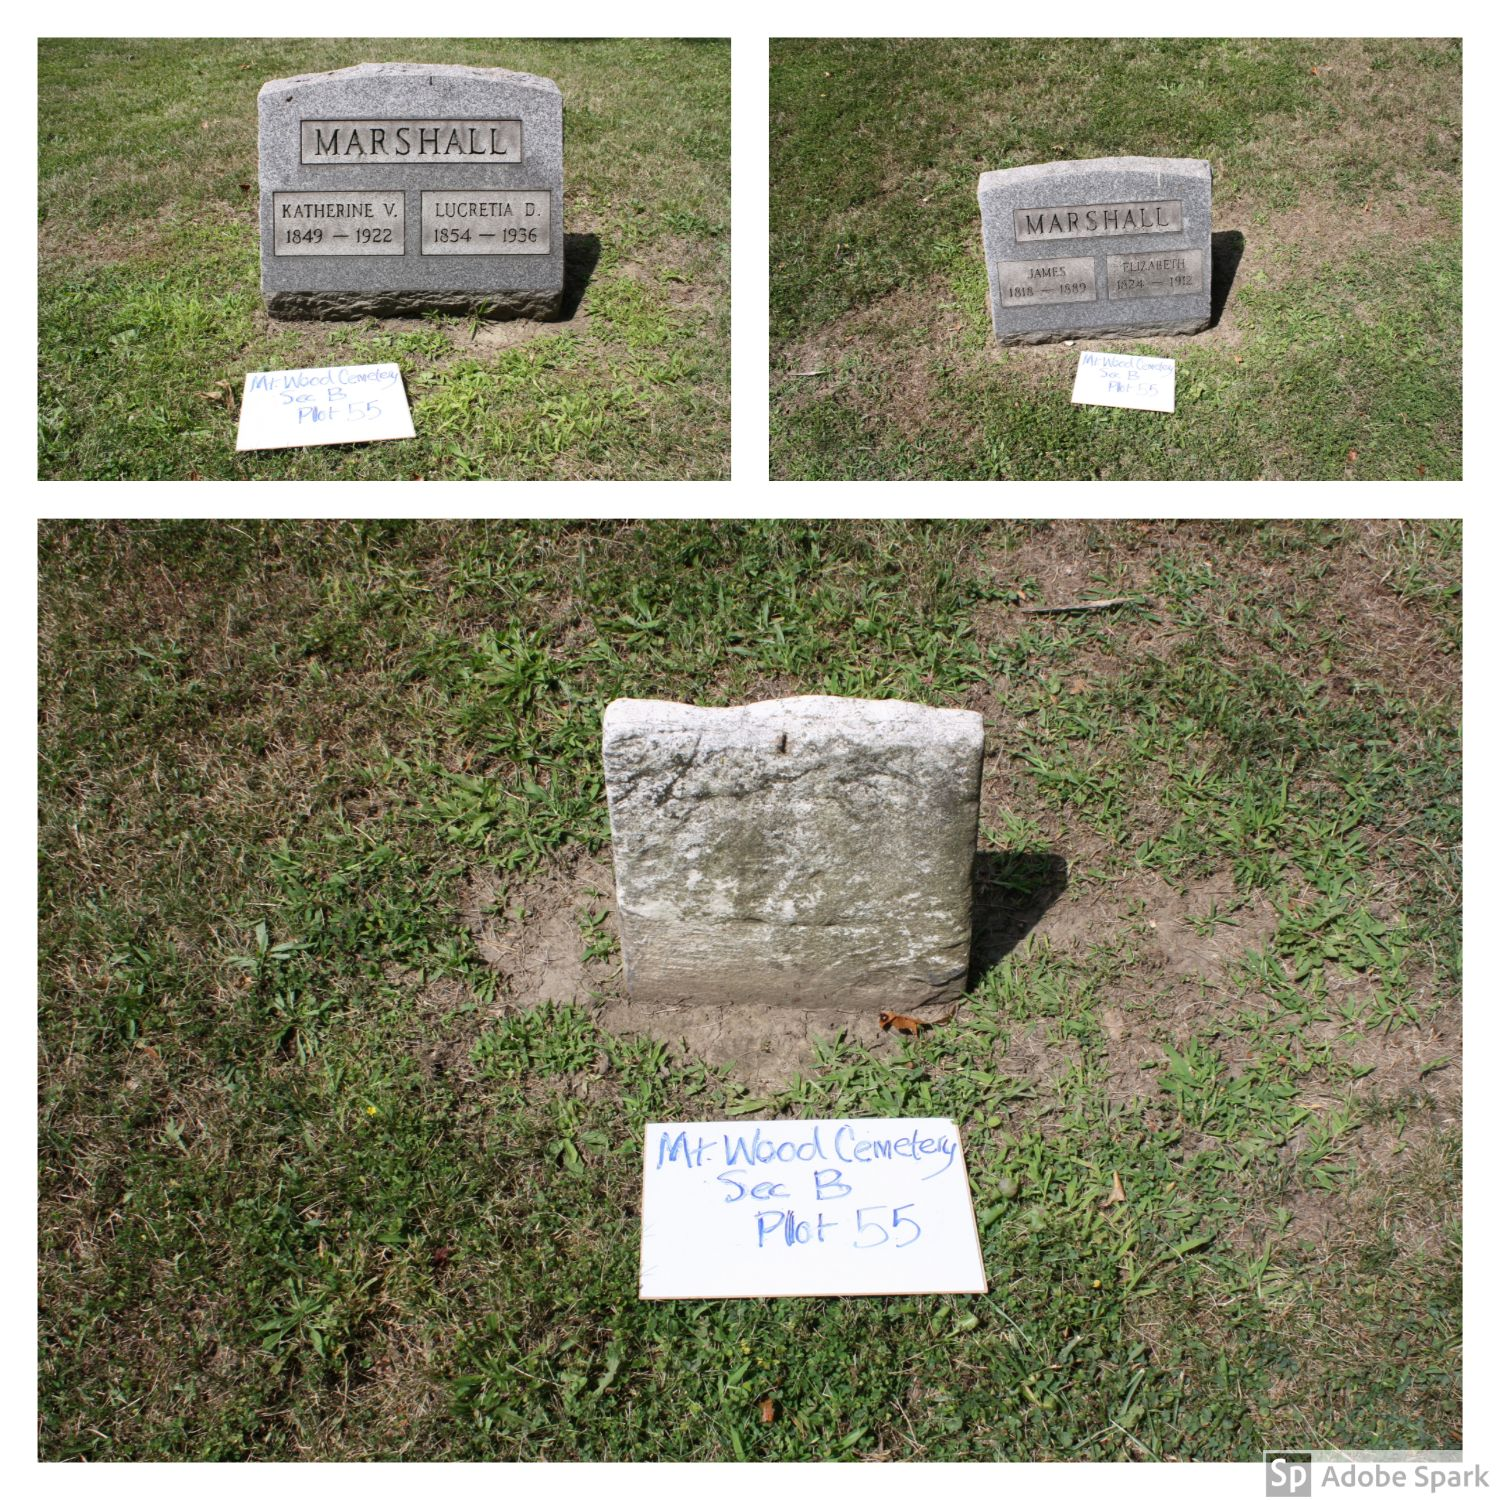 MT  WOOD CEMETERY: SECTION B